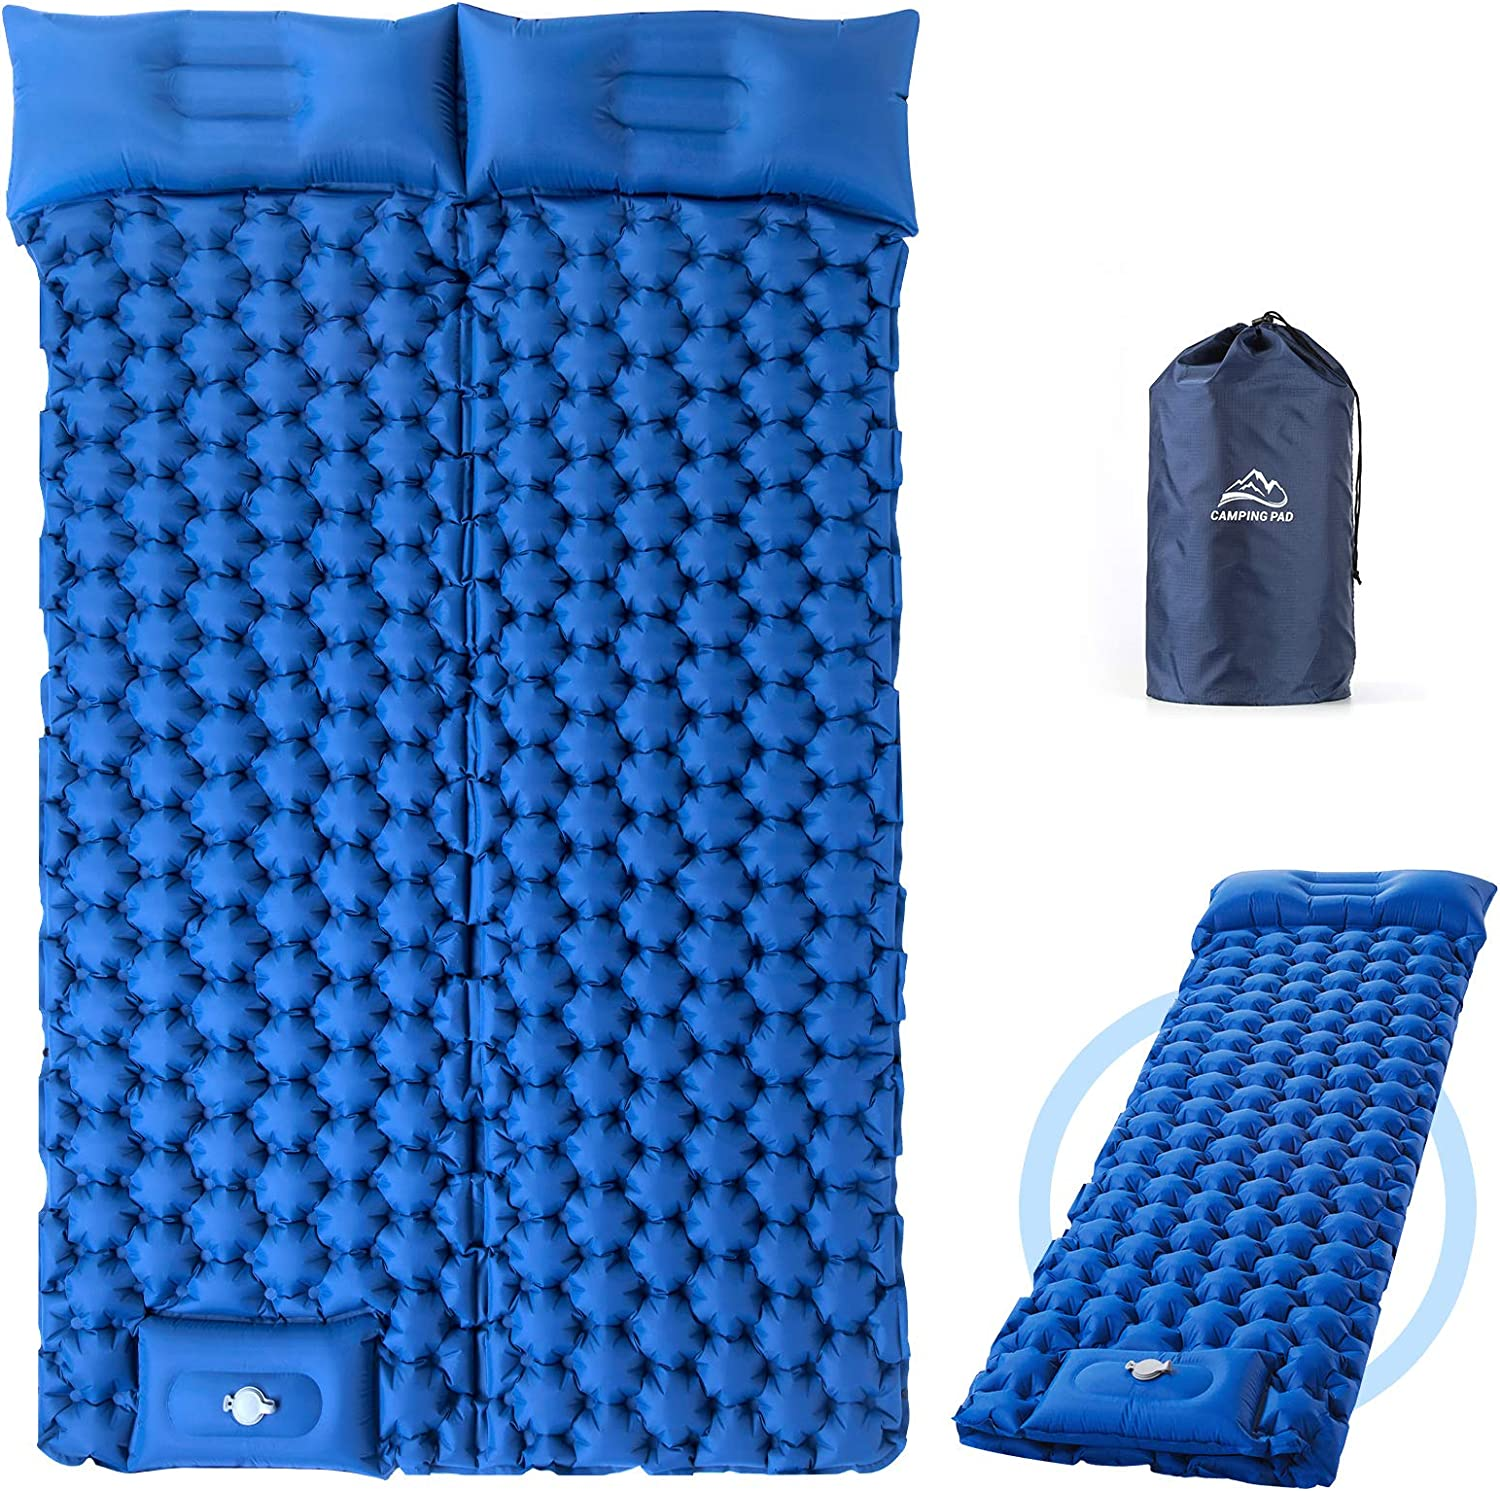 Elegear Sleeping Pad for Camping, Ultralight Inflatable Backpacking Air Mattress with Pillow Built-in Foot Pump, Waterproof Lightweight Compact Sleeping Mat for Hiking Tent Traveling Road Trip Double